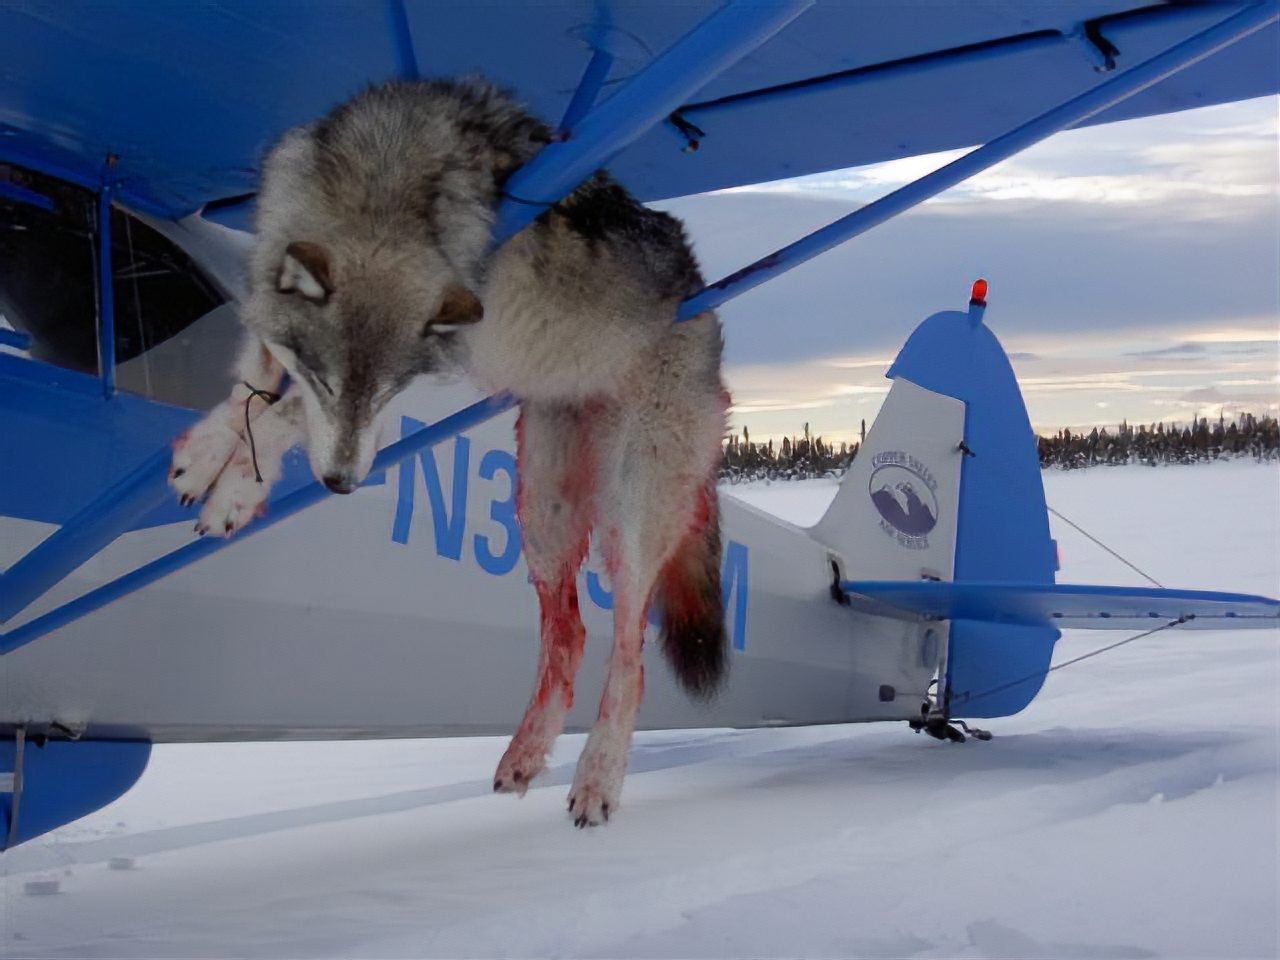 Bloody wolf killed with plane